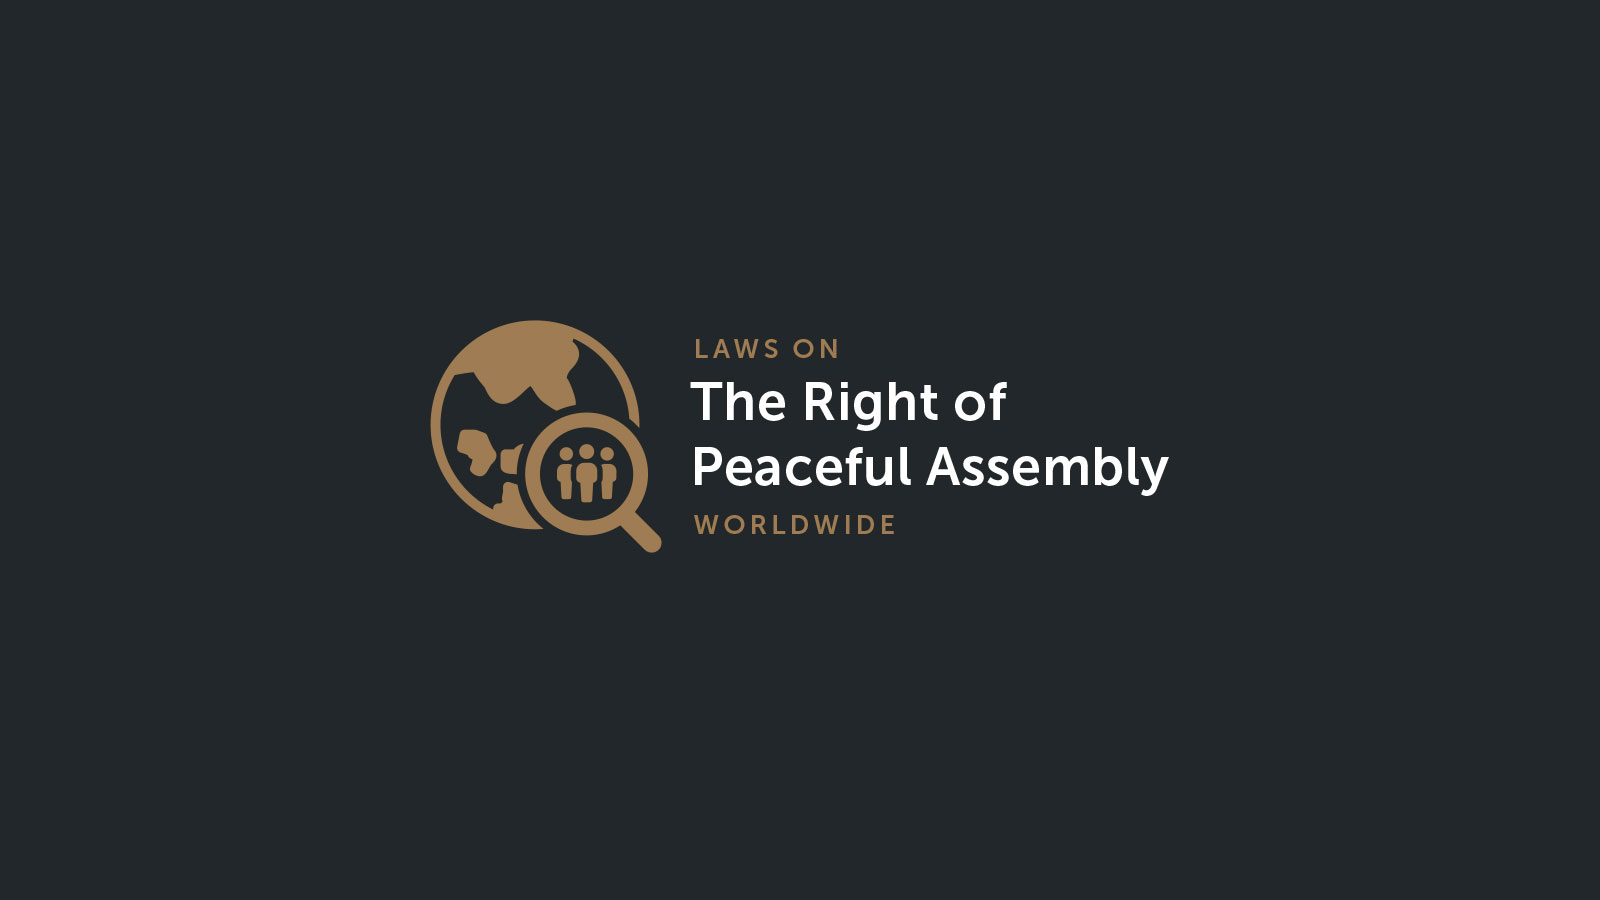 Draft General Comment on the Right of Peaceful Assembly